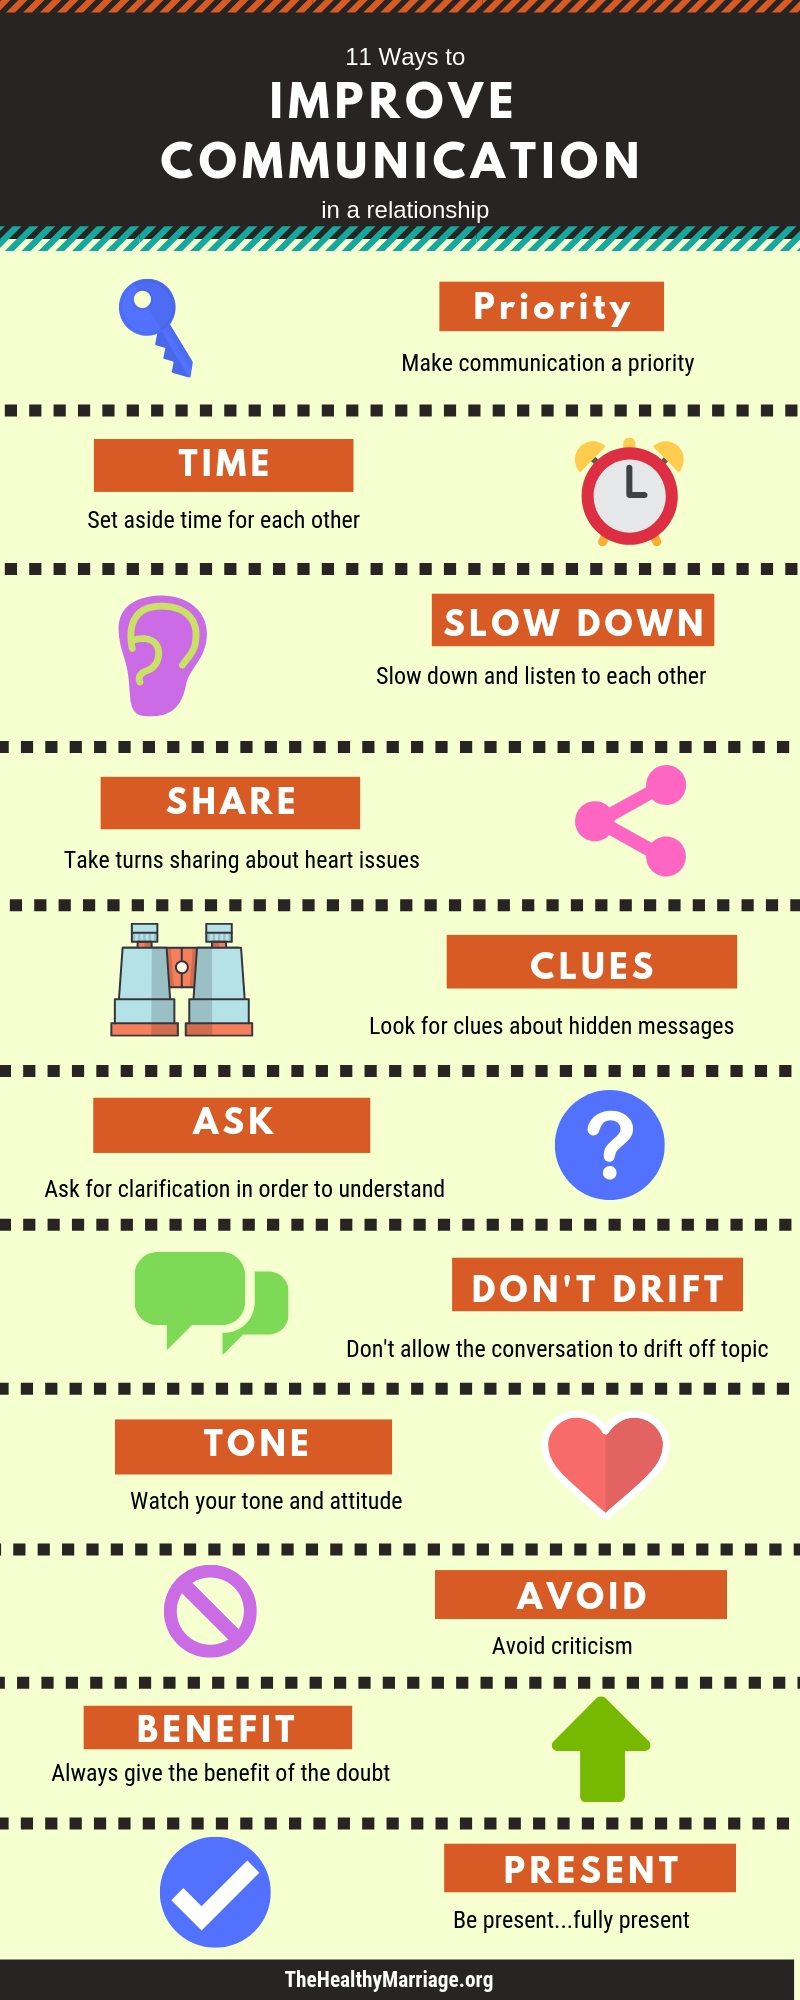 11 Ways to Improve Communication in a Relationship infogrpahic